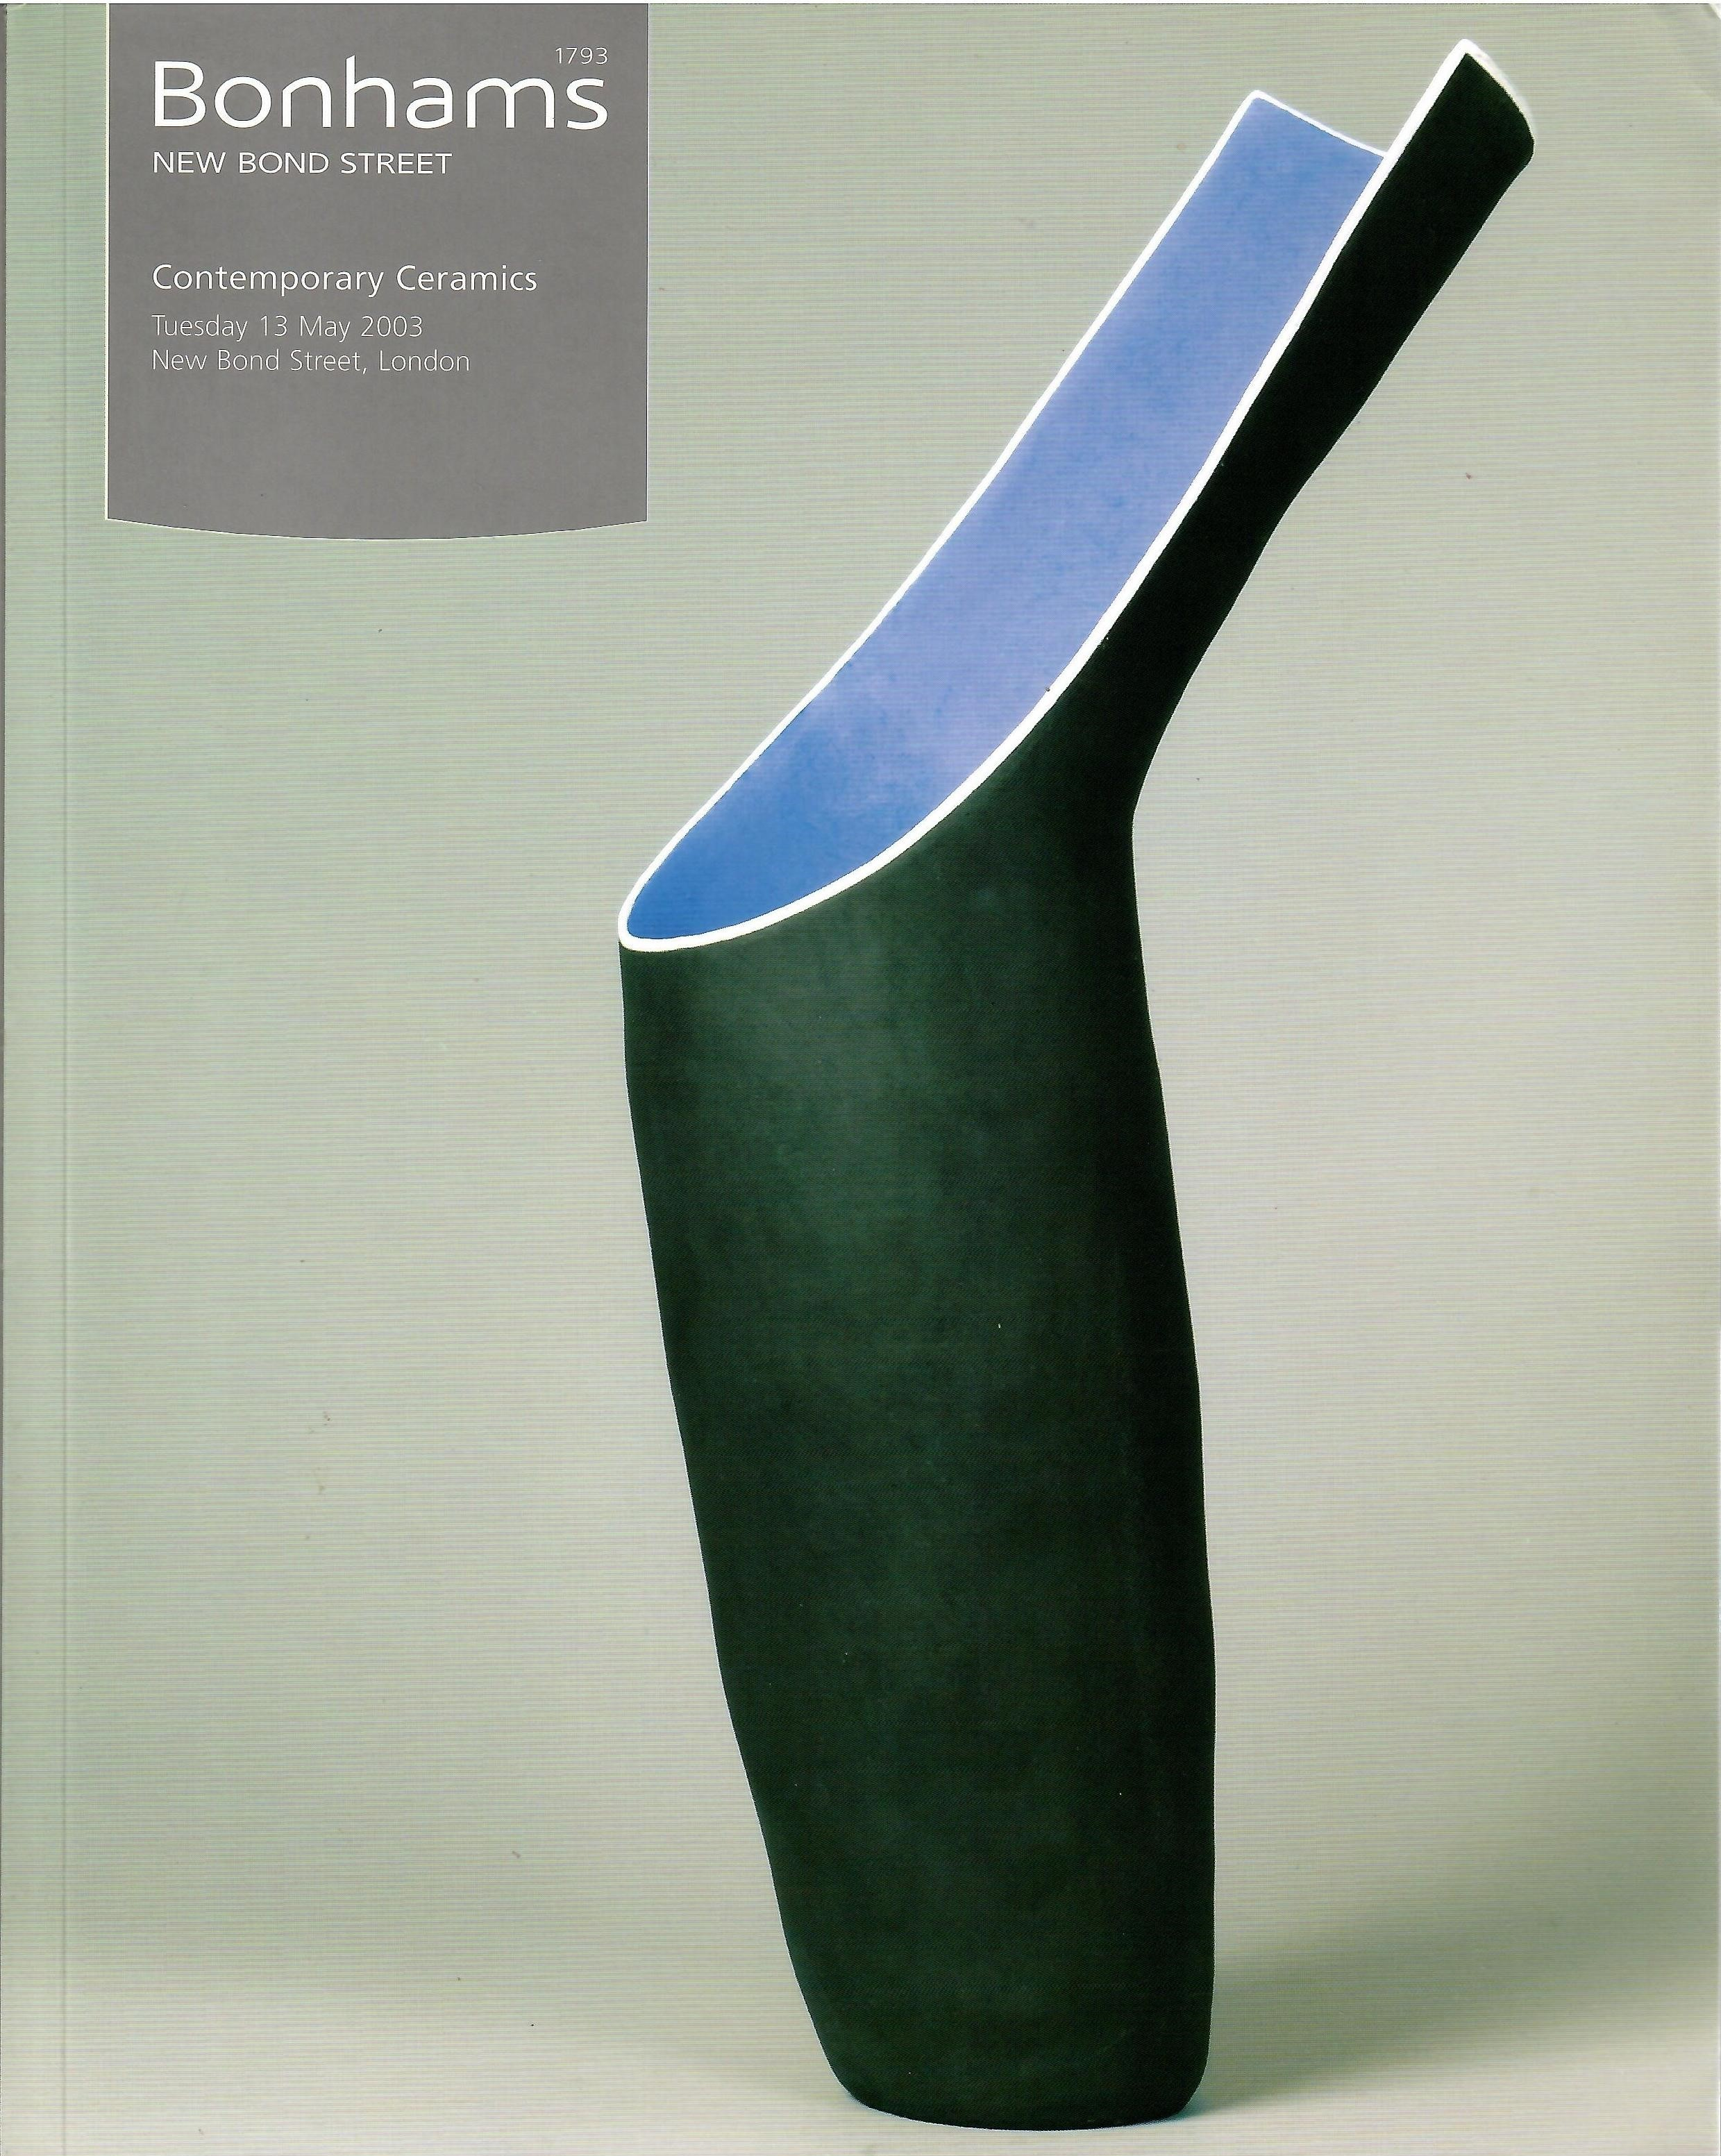 Image for Tuesday, May 13, 2003; CONTEMPORARY CERAMICS